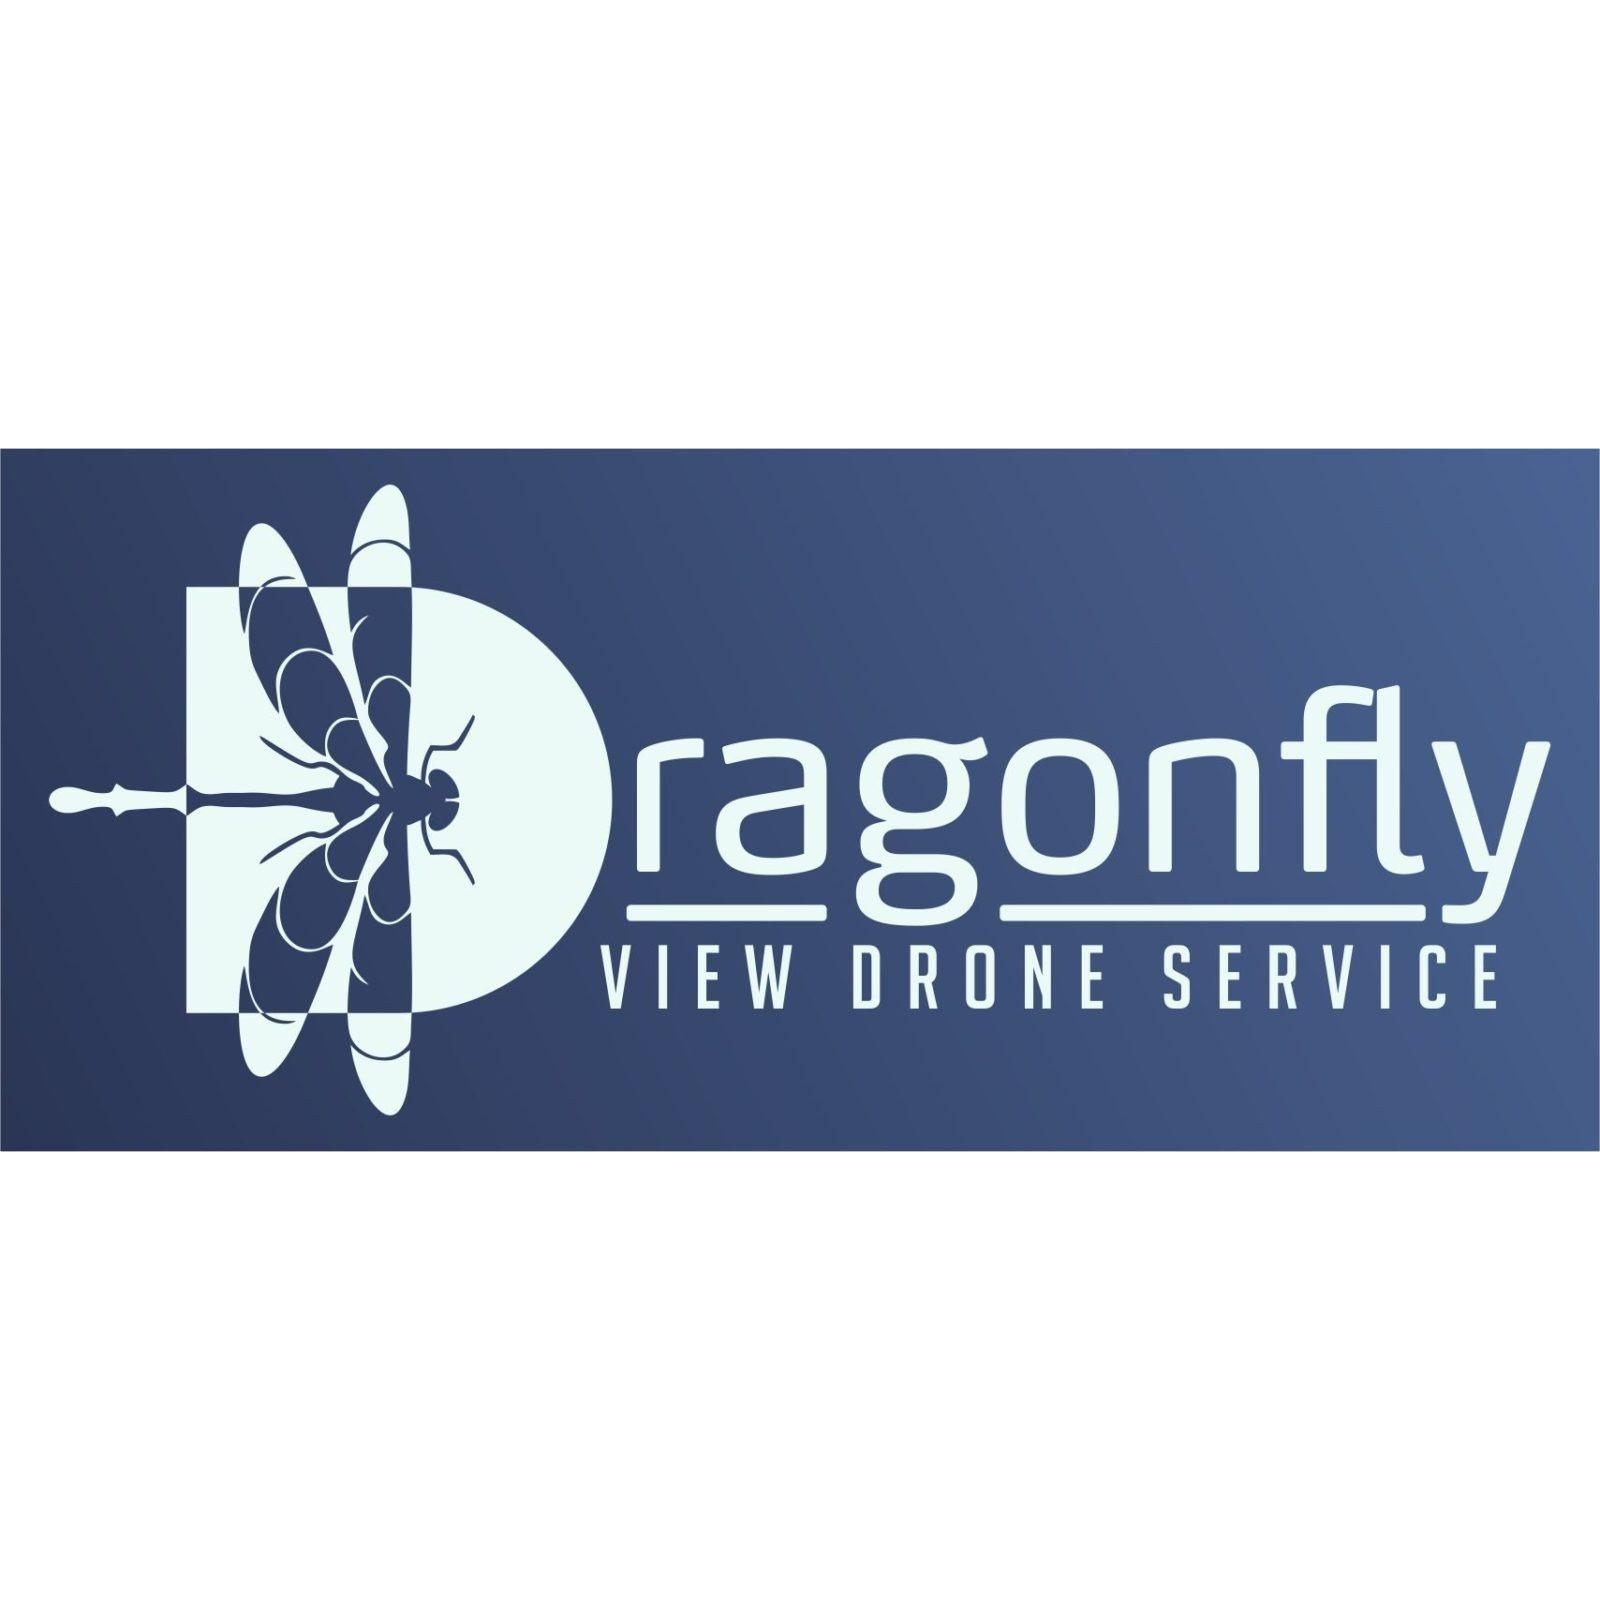 Dragonfly View Drone Service - Madison, MN - Photographers & Painters